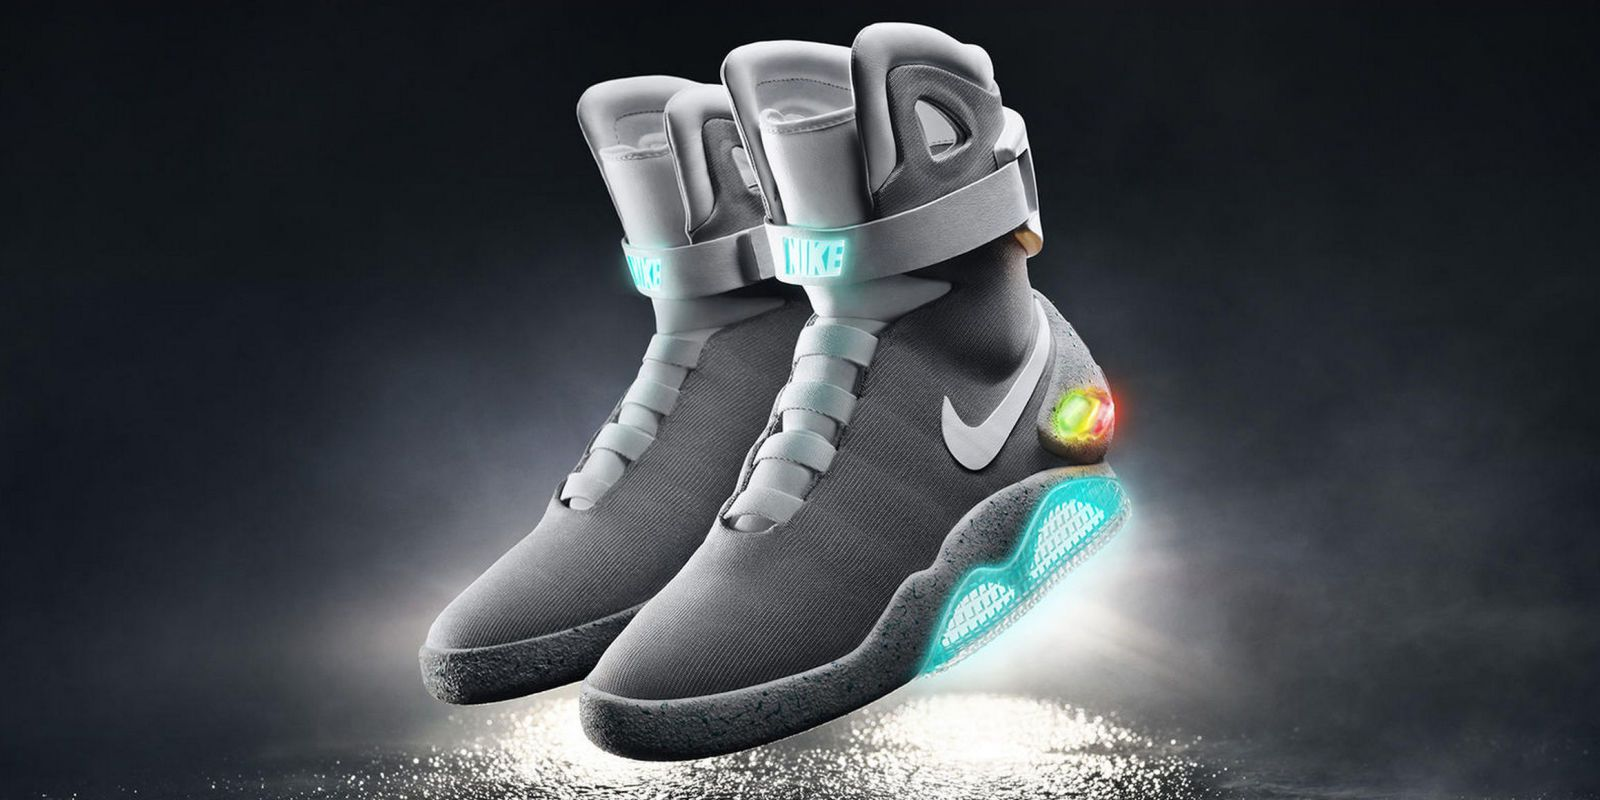 Nike Created Electronic Sneakers That Actually Lace Themselves